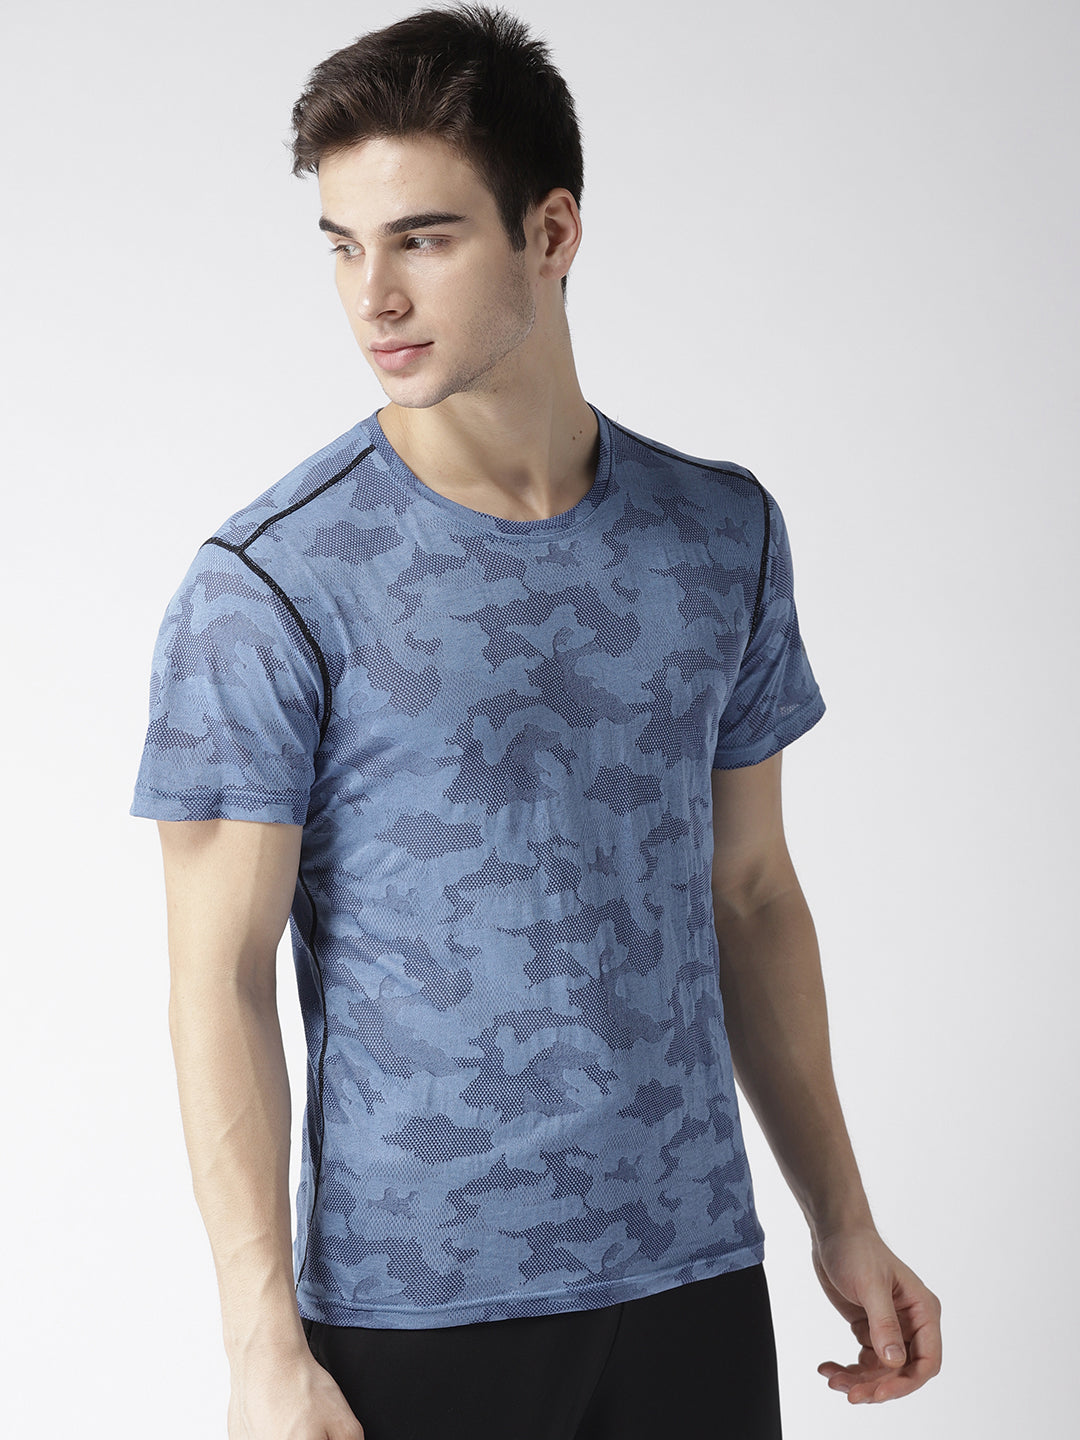 Men Camouflage Pattern T-shirt